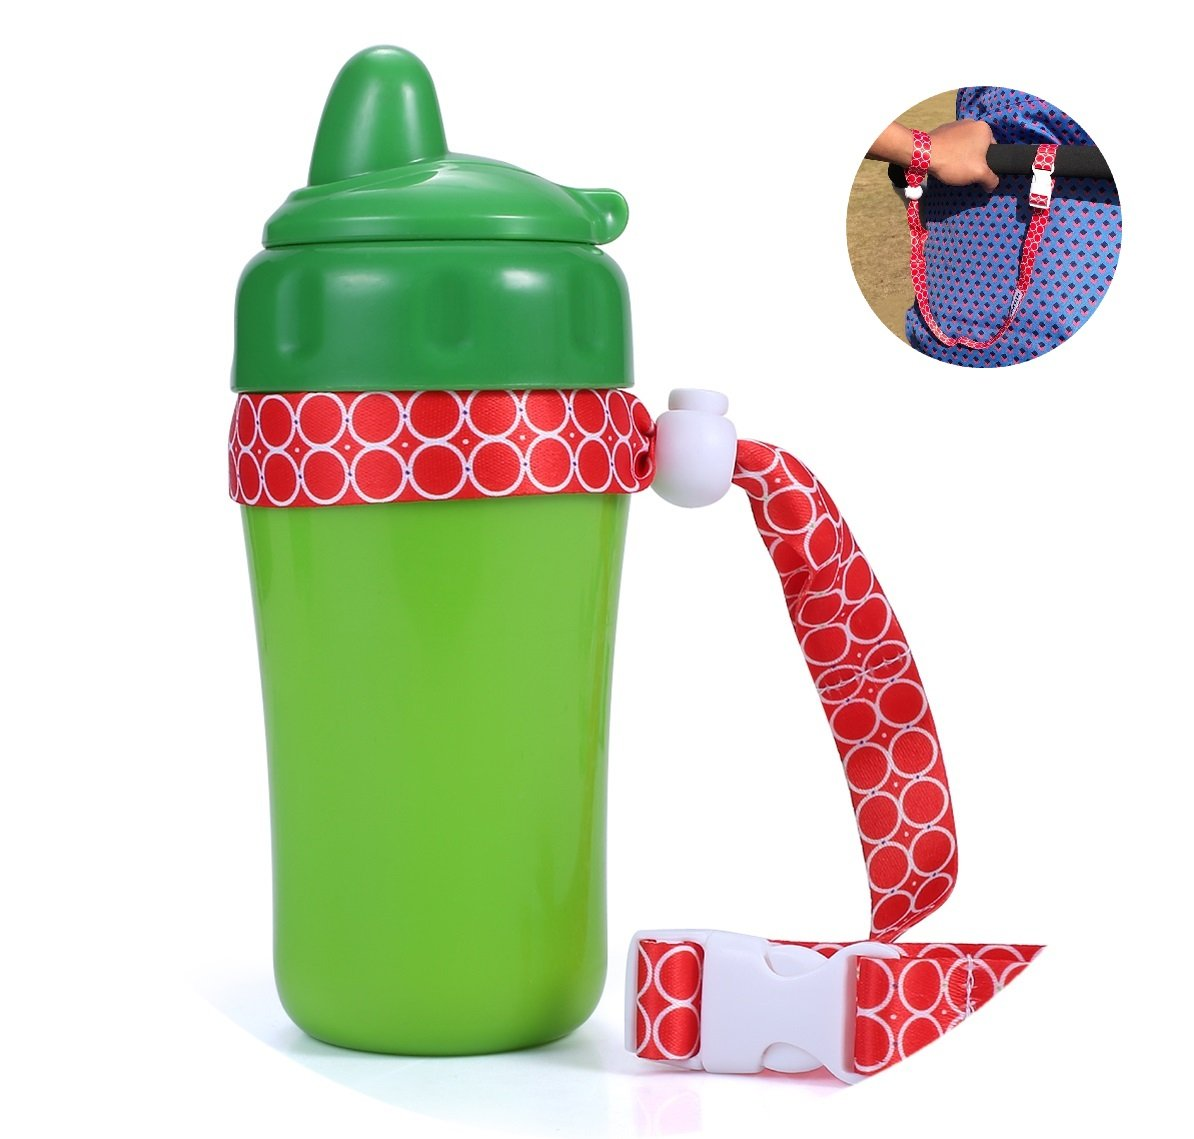 Parawin Multifunctional Strap - Anti-Lost Stroller Strap For Sippy Cup Holder and Toys - Pram Wrist Strap 4 Pack